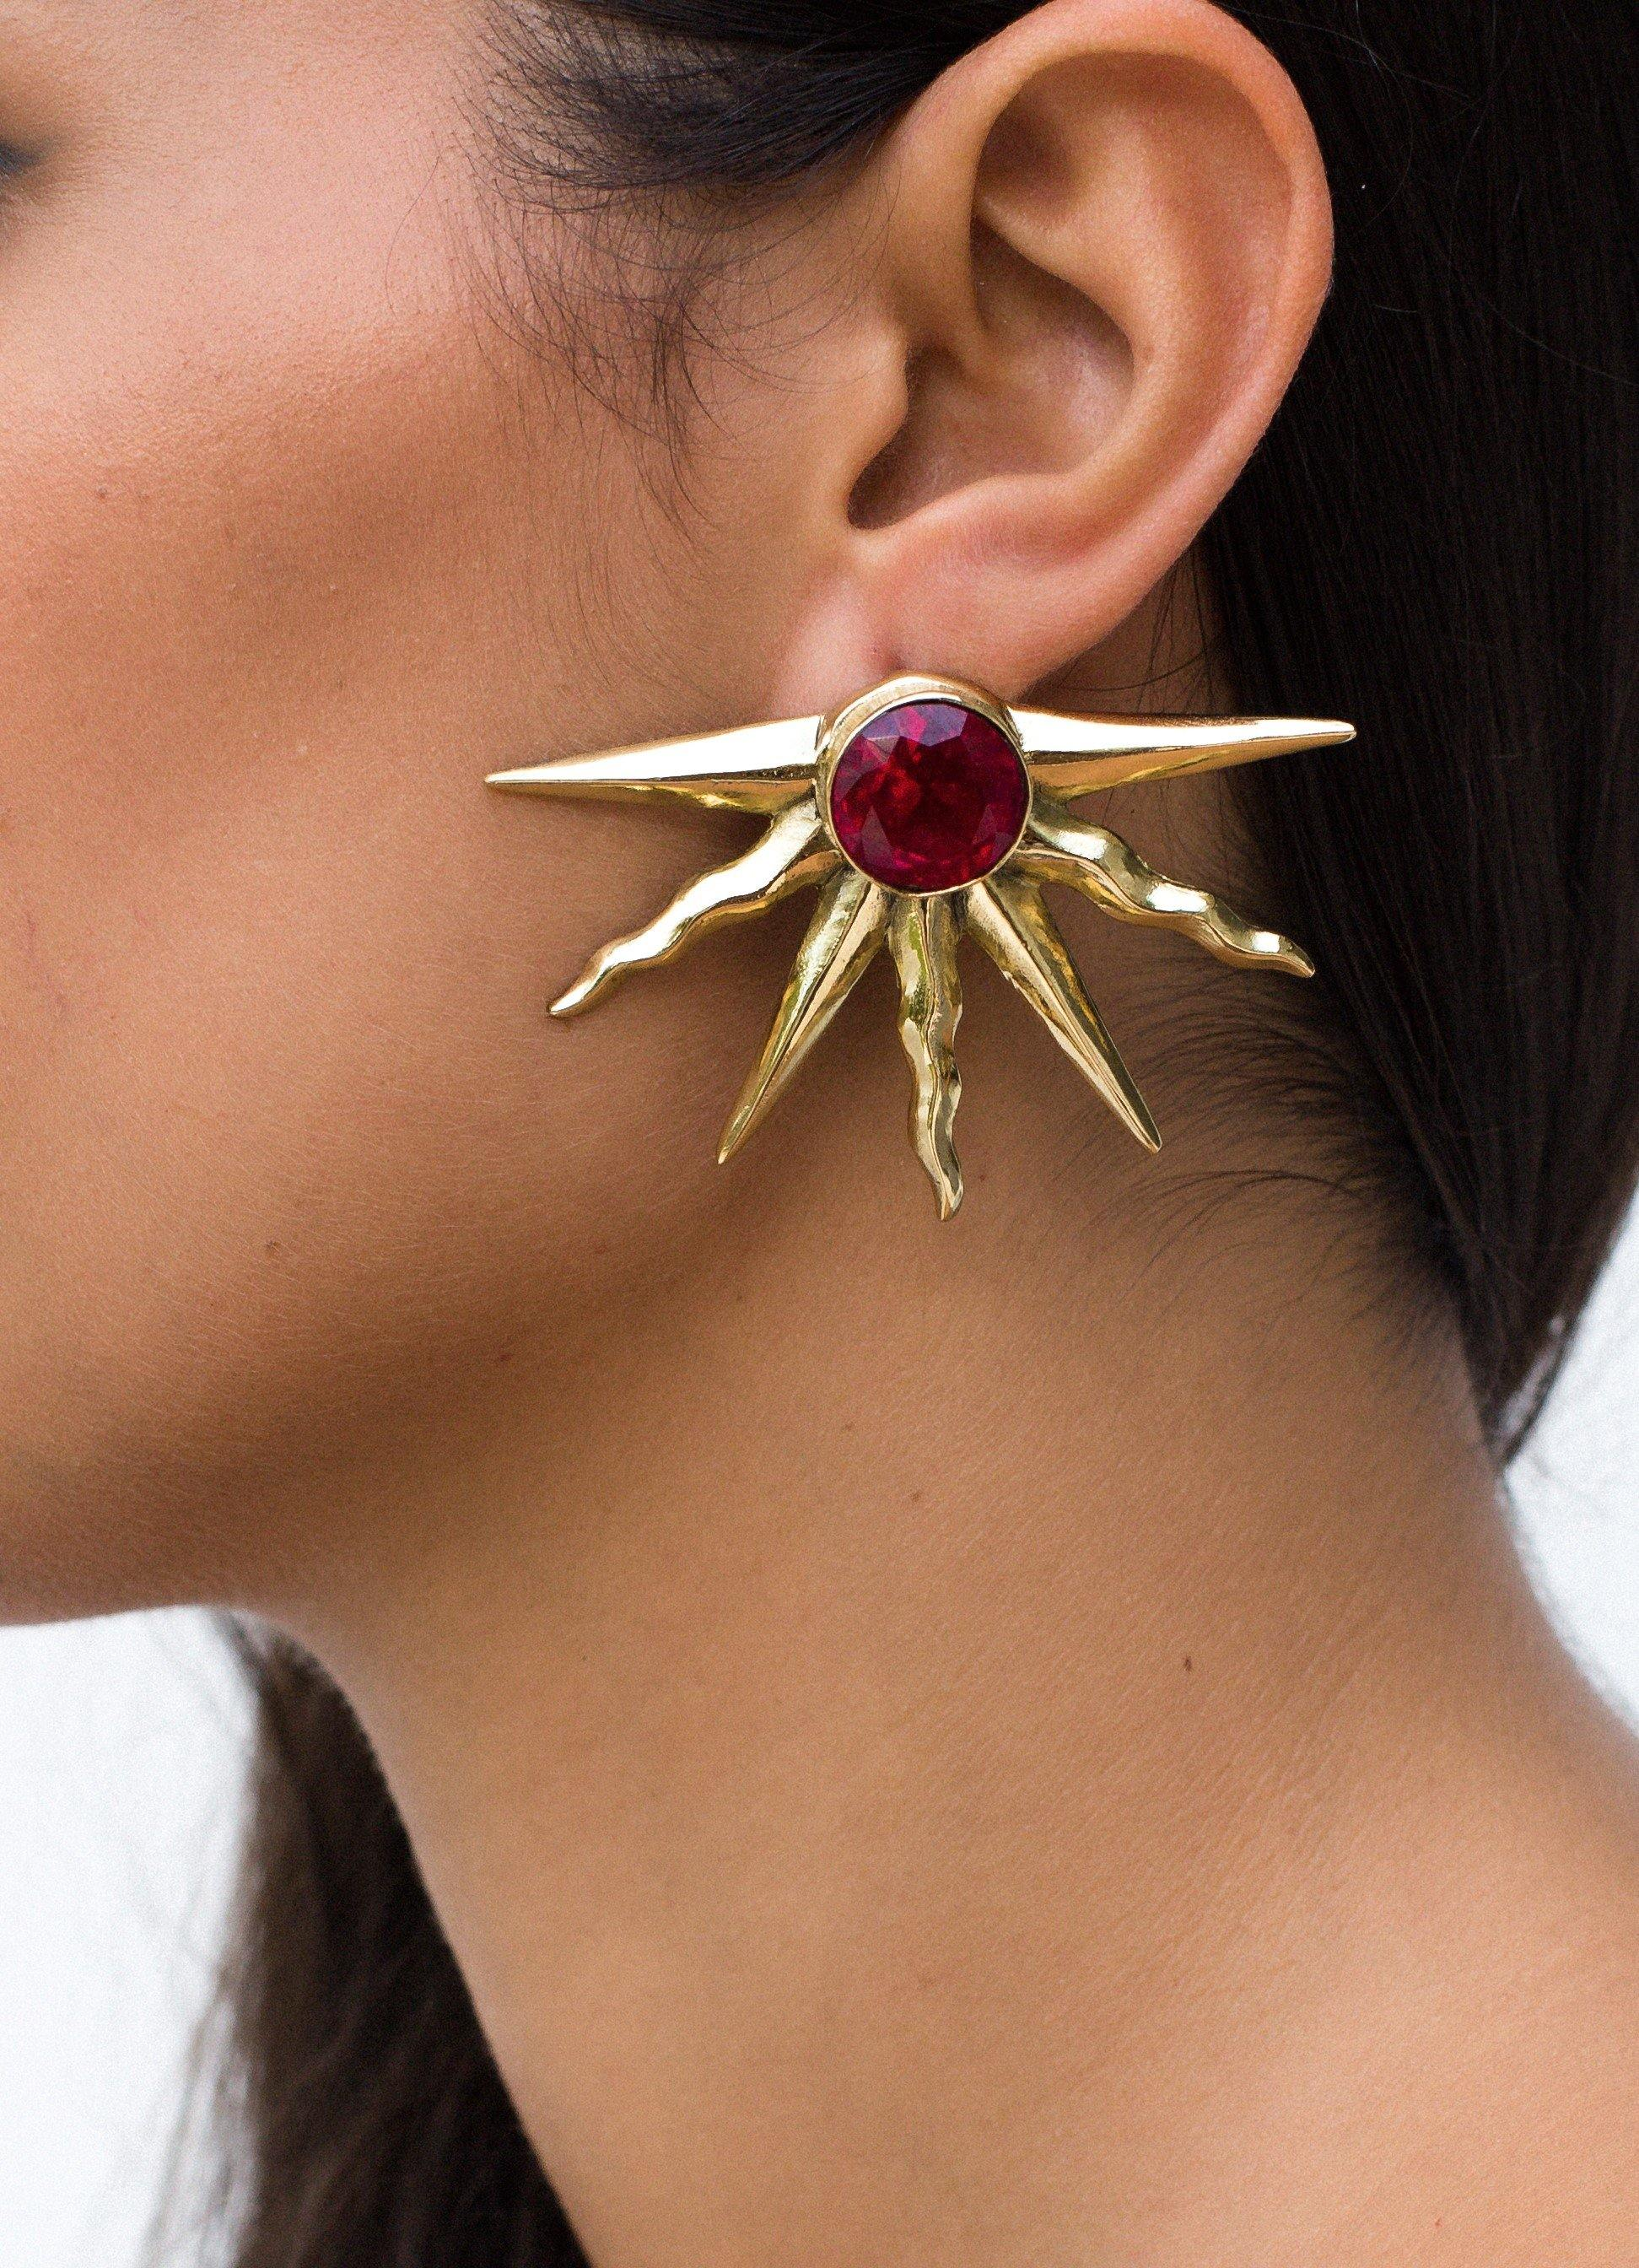 Solis Earrings - Kasha Bali